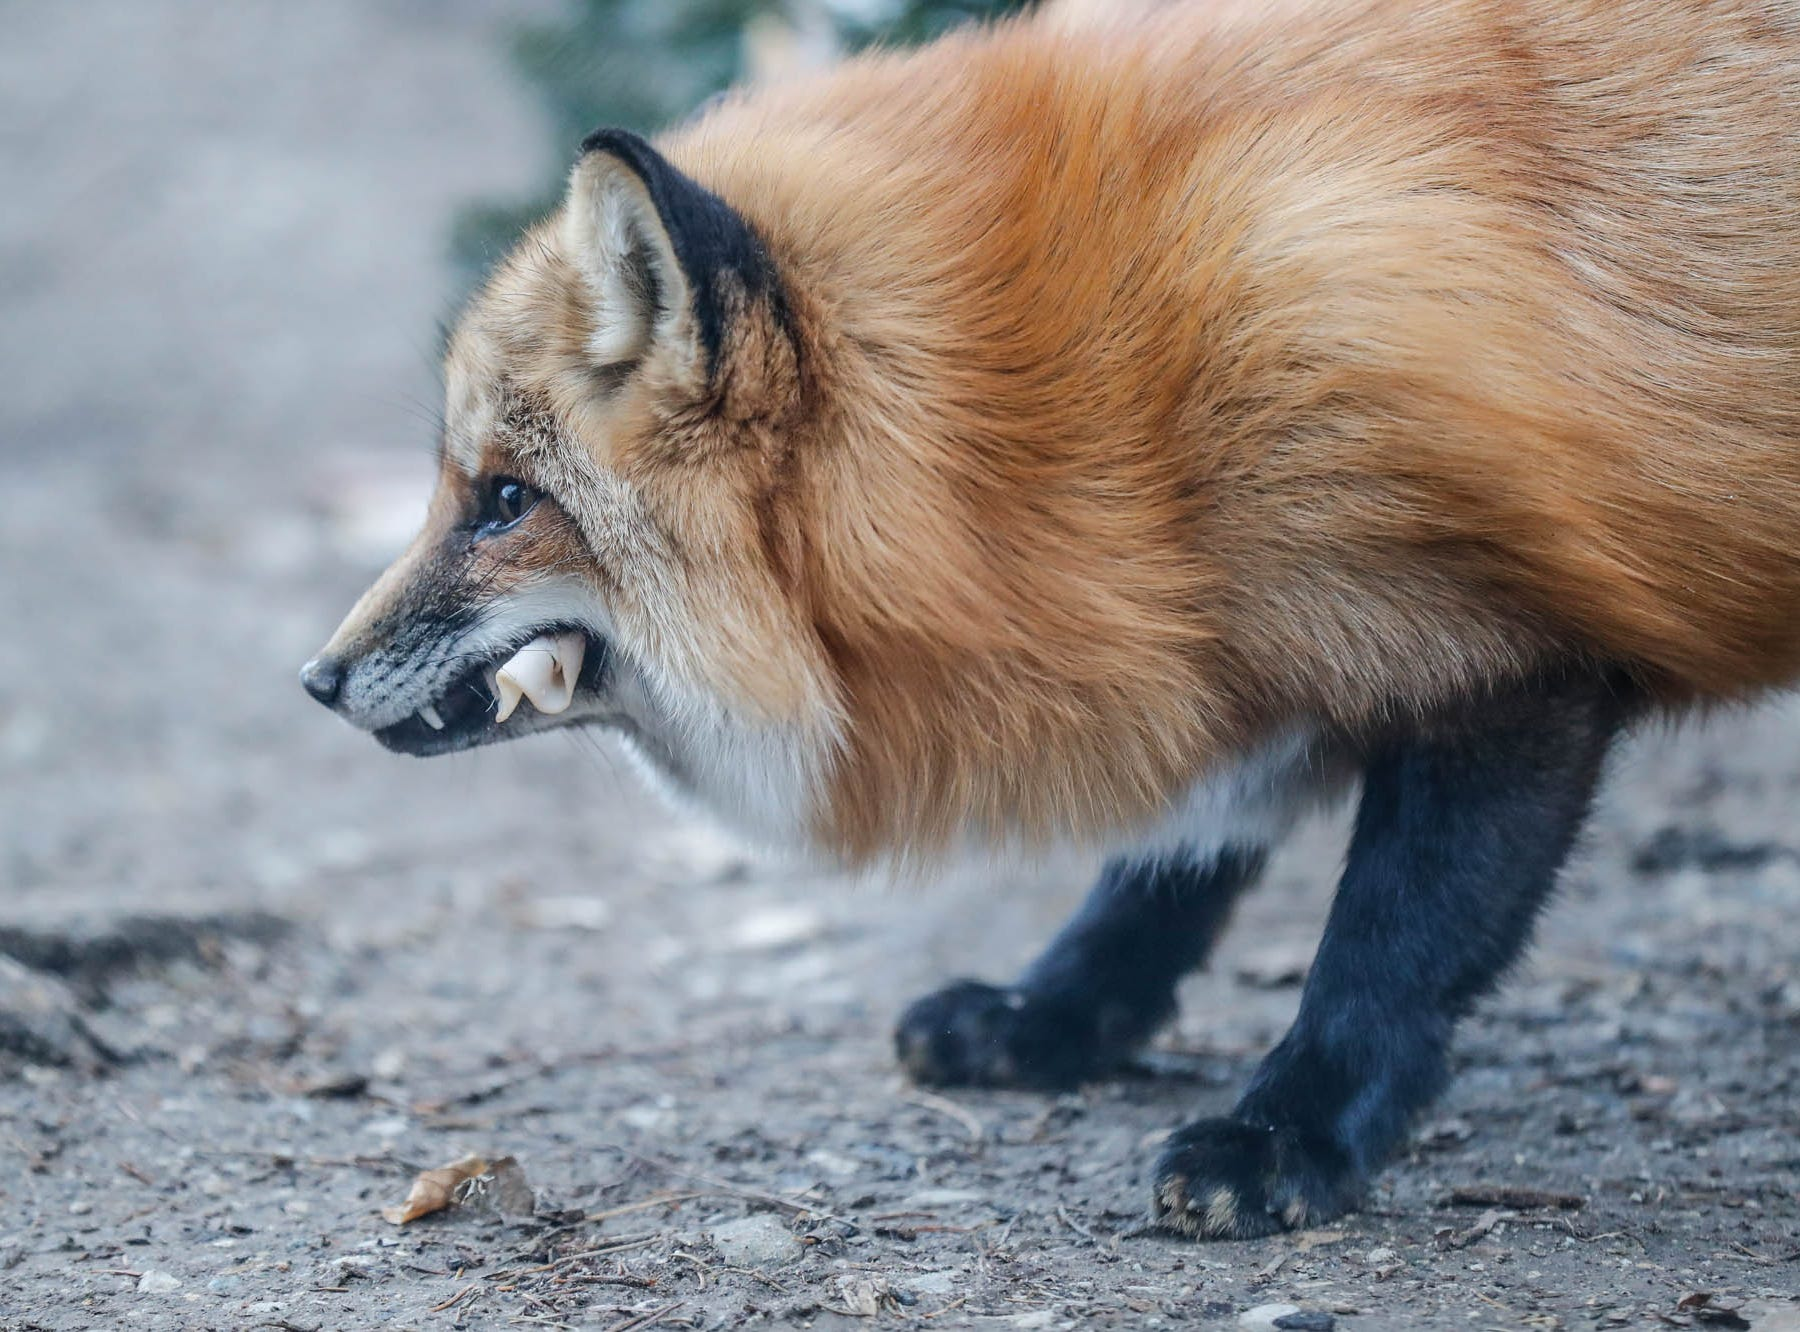 Scarlette, a red fox, enjoys tasty treats for Christmas which decorated the fox enclosure at Wolf Park during Santa's annual visit in Battle Ground Indiana on Saturday, Dec. 15, 2018.